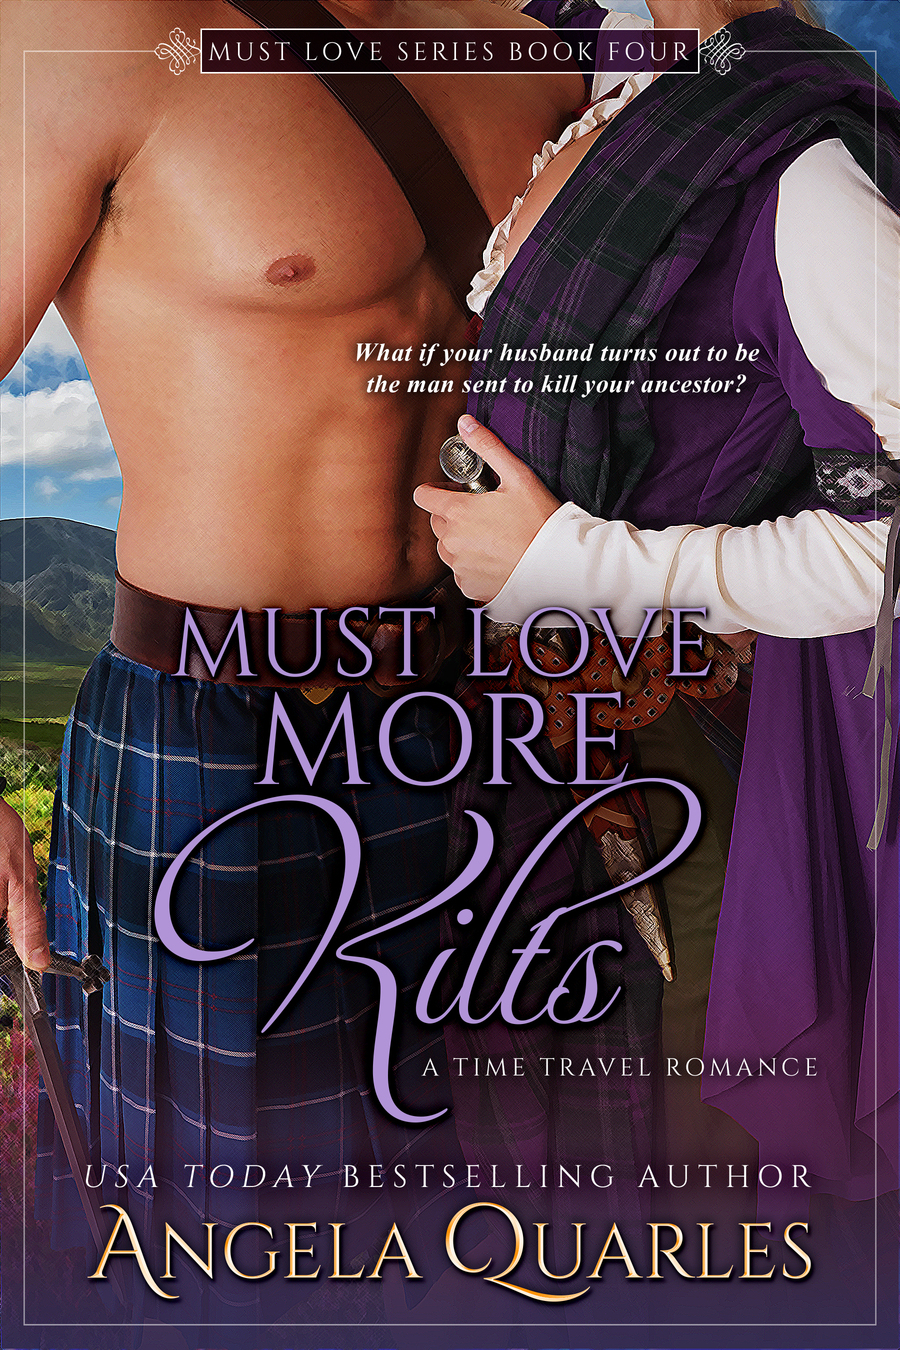 MUST LOVE MORE KILTS is out!